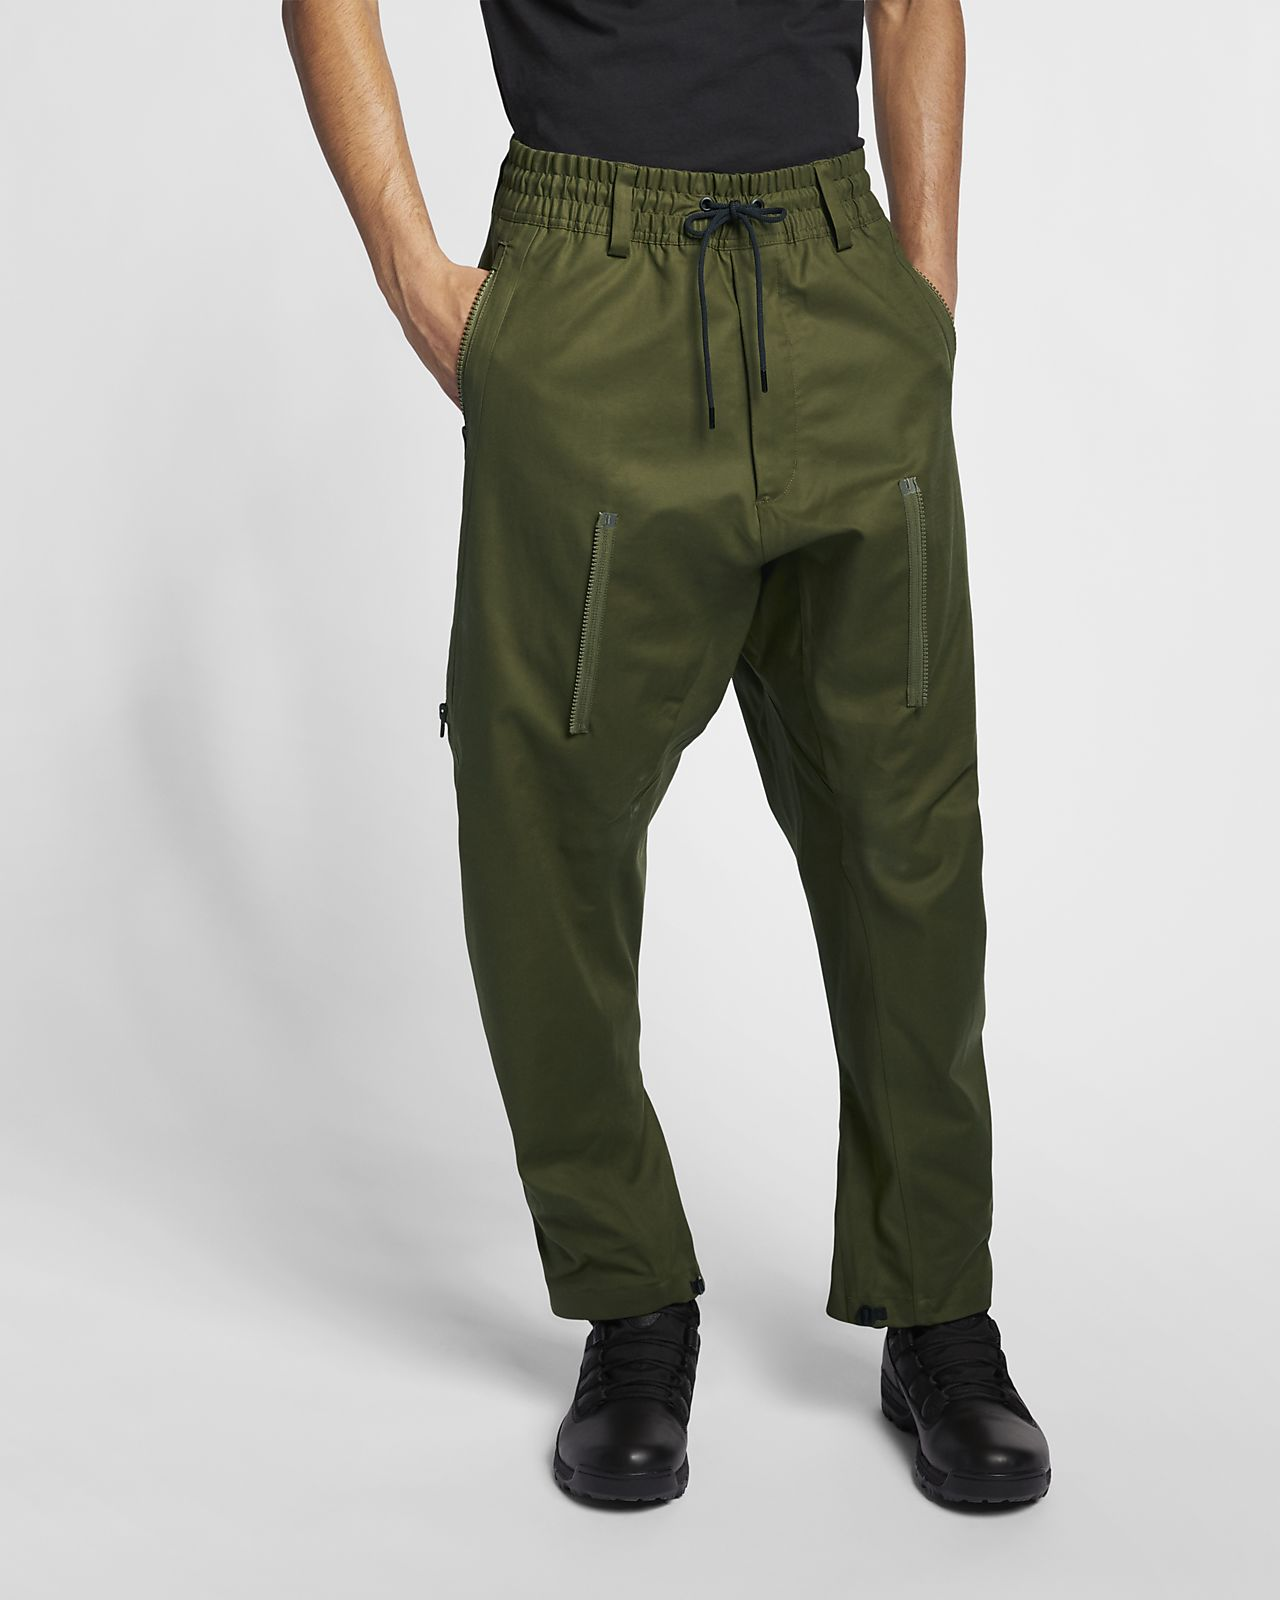 NikeLab ACG Men's Cargo Trousers